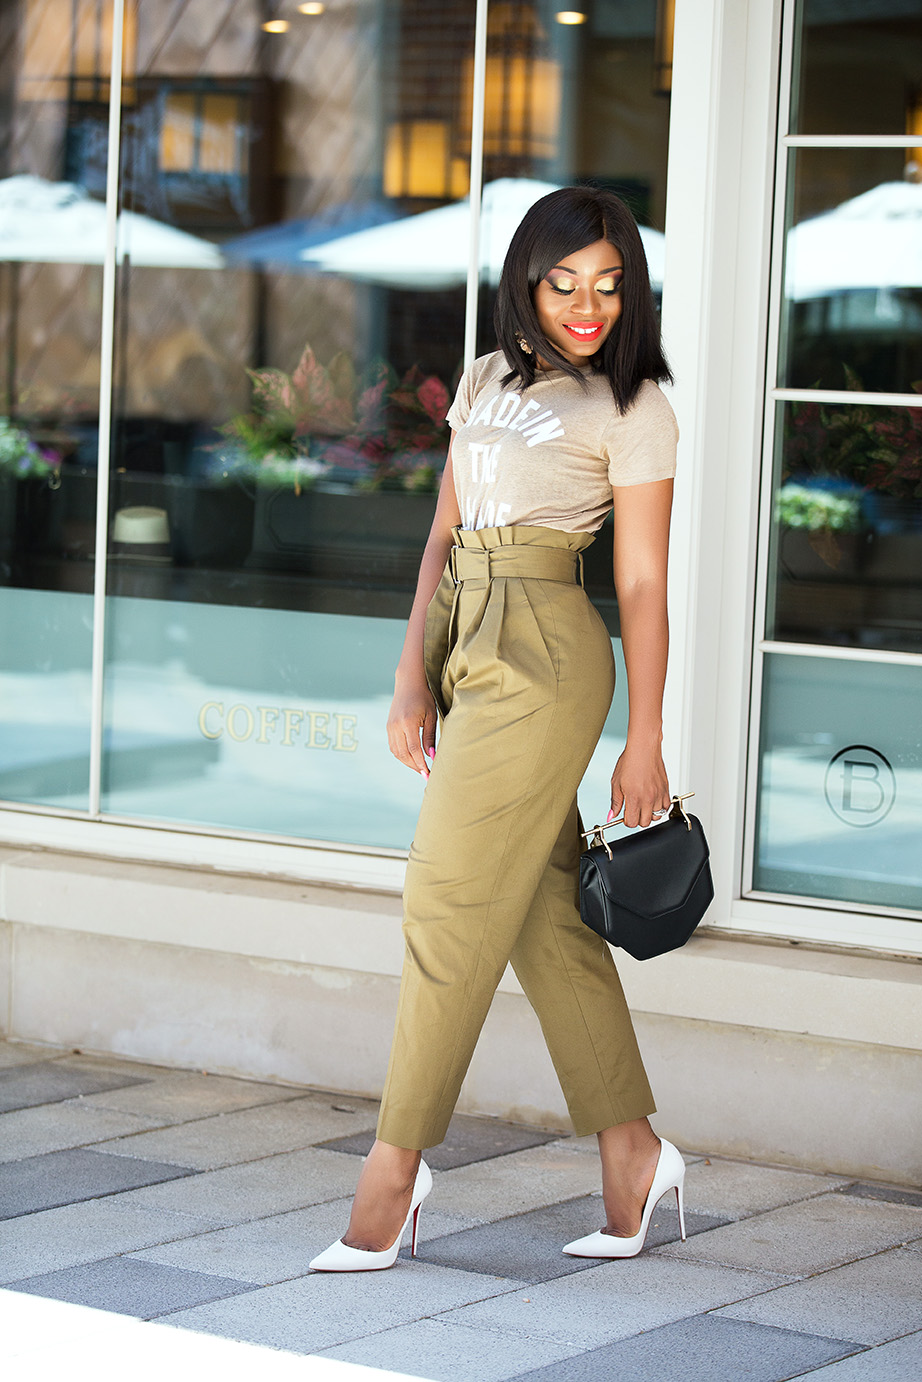 high-waist trouser, white pumps and graphic tee, www.jadore-fashion.com